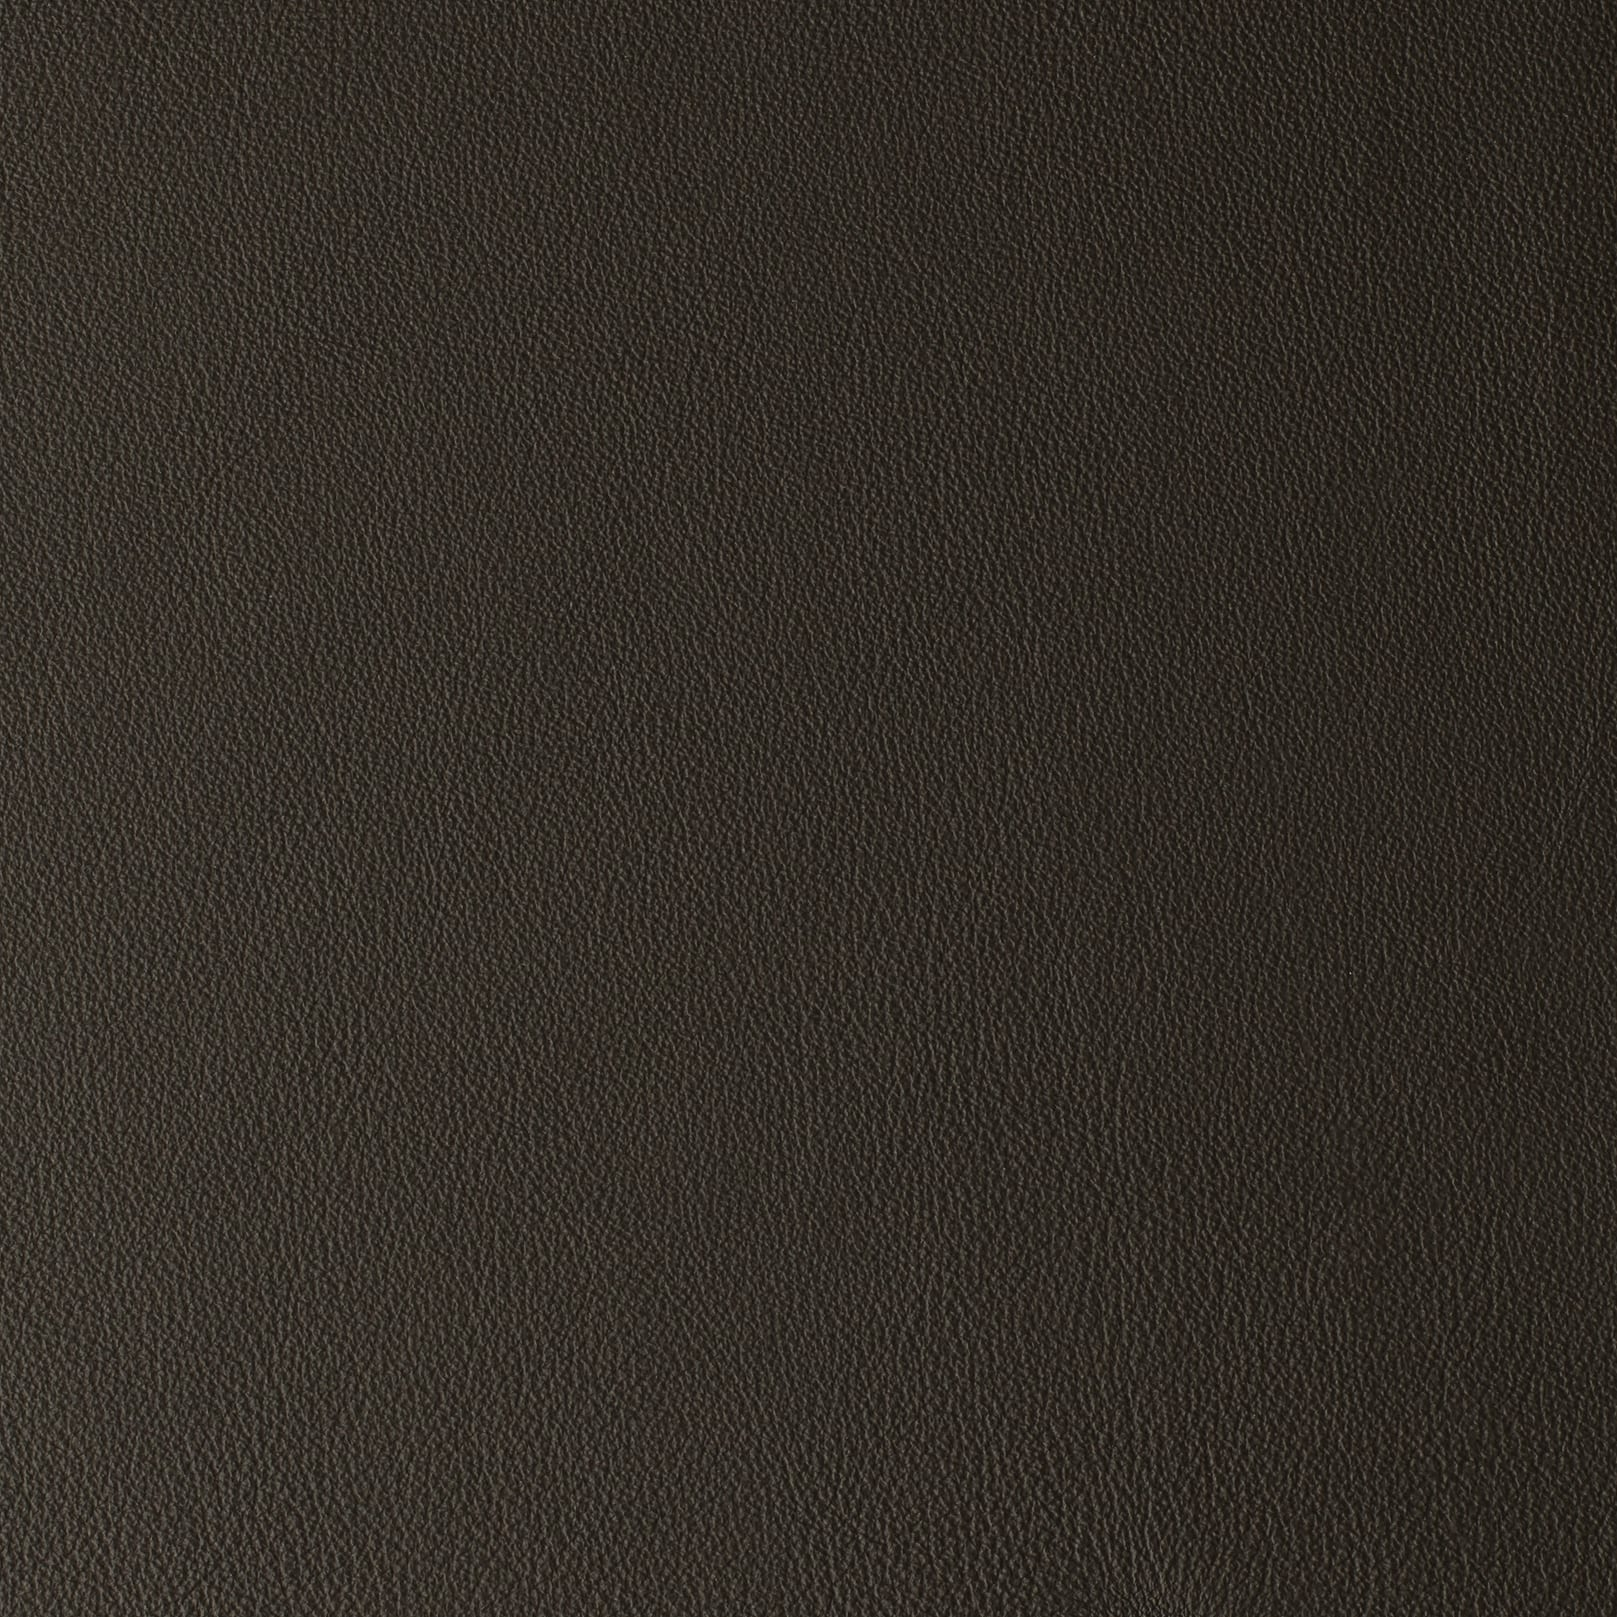 LAGUNA BROWN 08611 - fabric finishes